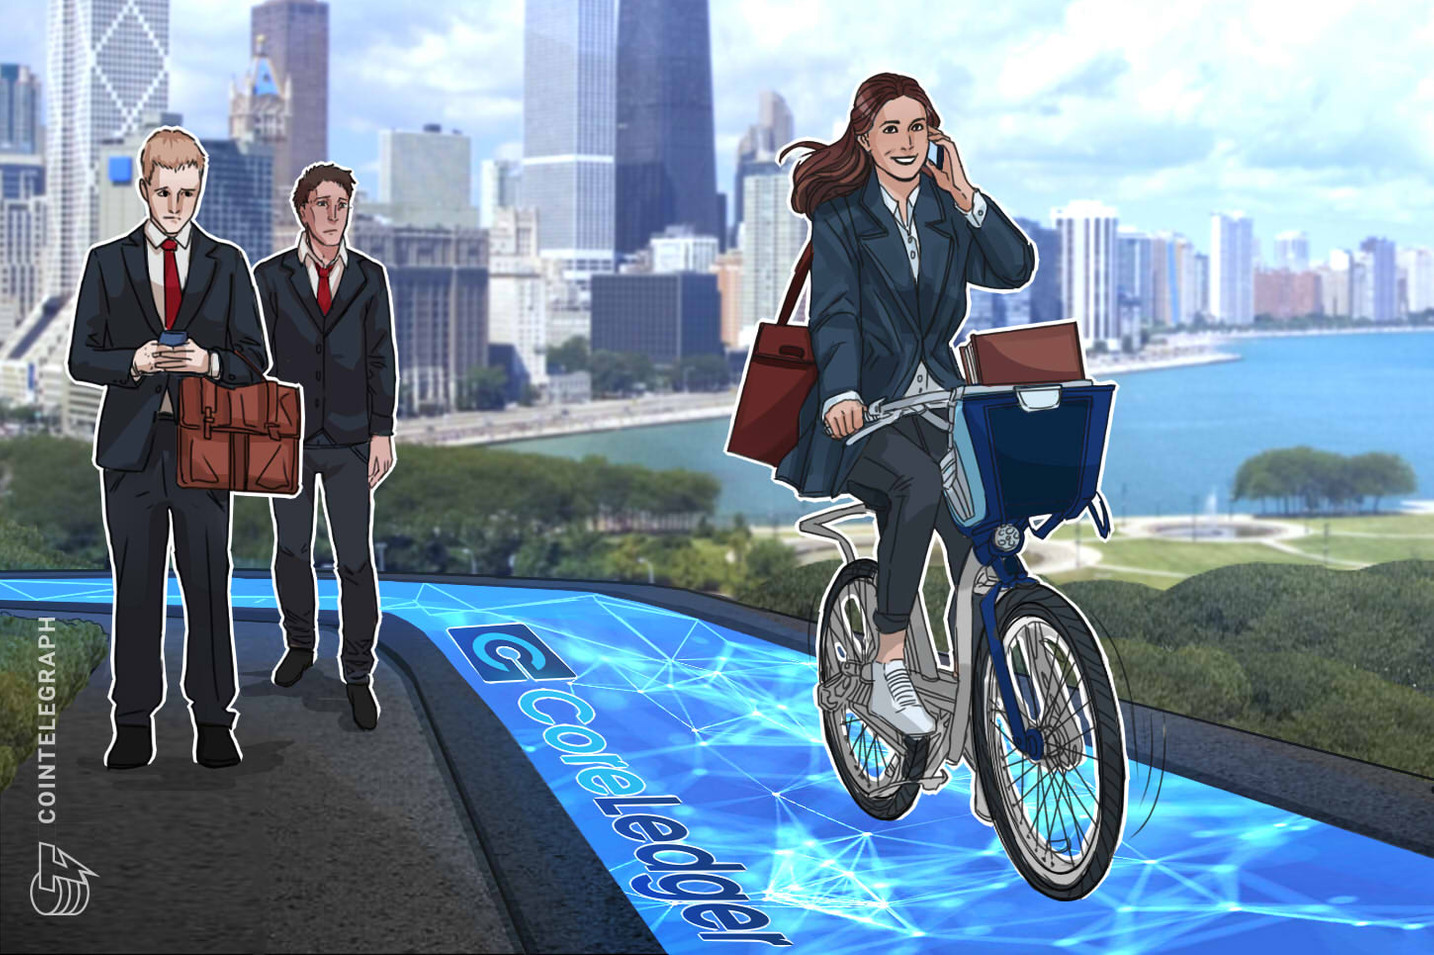 Swiss Blockchain Firm Helps Dynamic Bicycle Parking Company Thrive